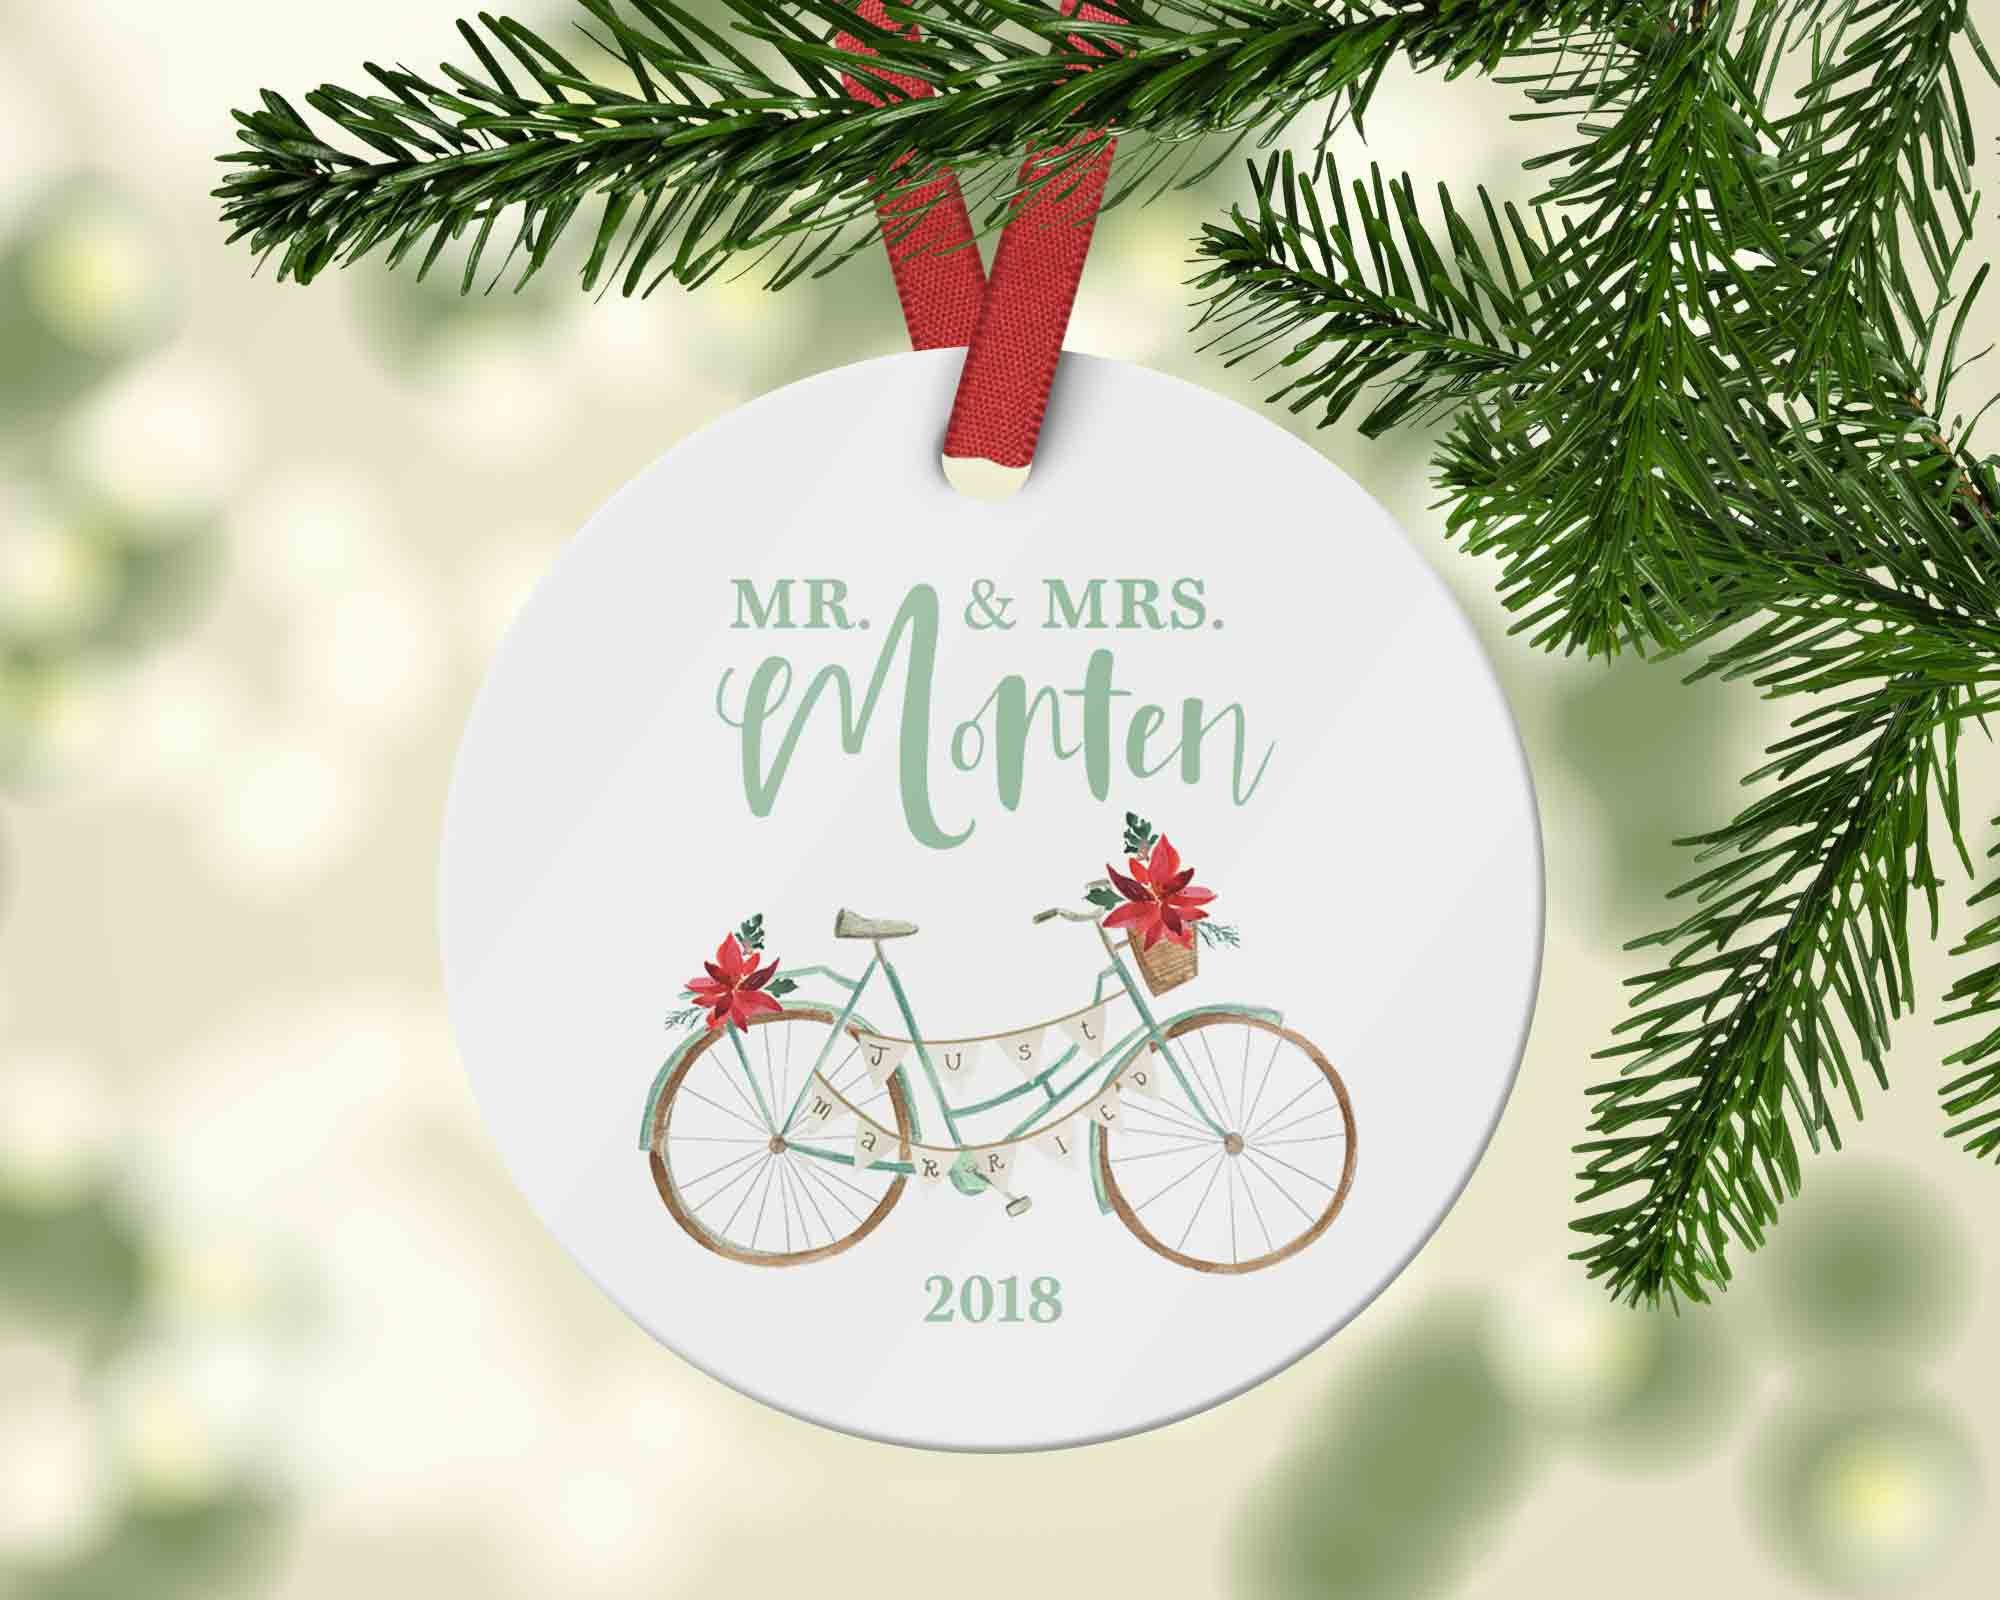 Customized Mr And Mrs Ornament Gift For First Christmas Etsy First Christmas Married Bike Wedding Ornament Gifts